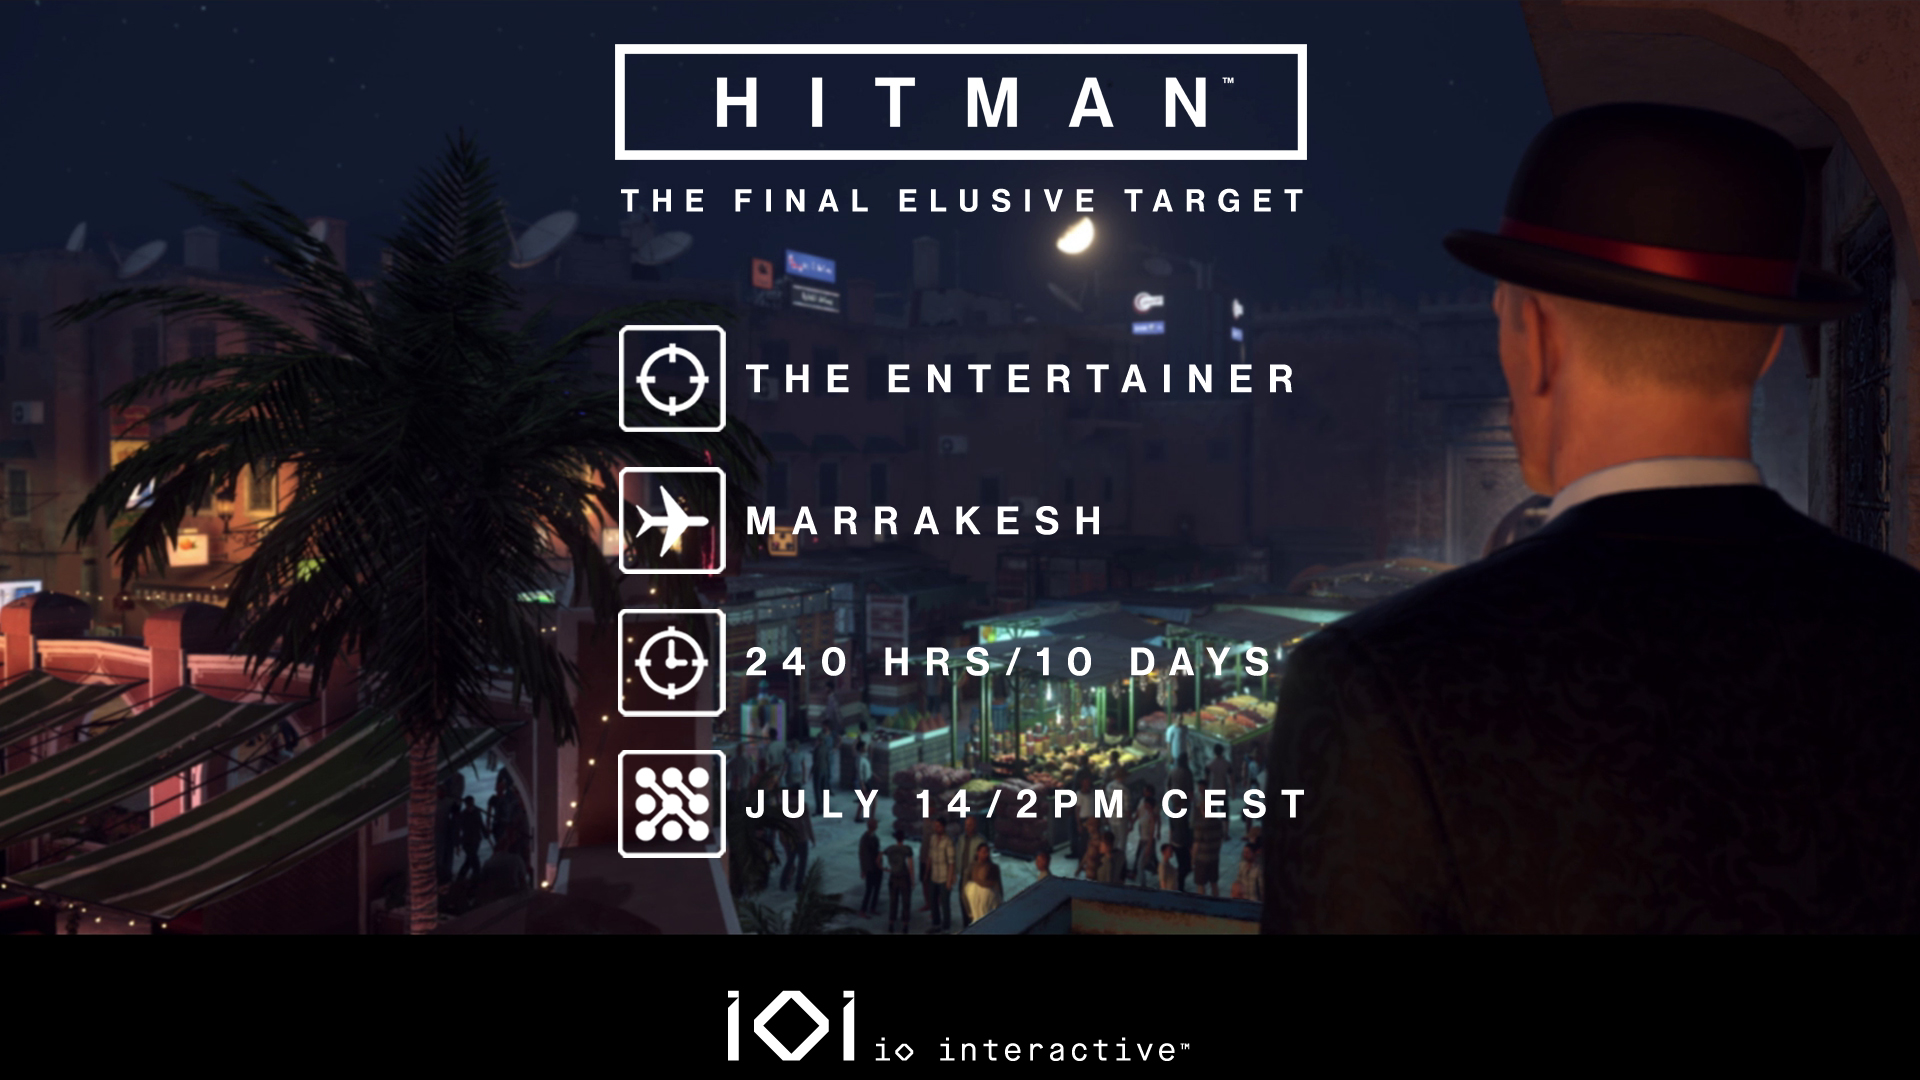 The last elusive target of Hitman's first season goes live tomorrow